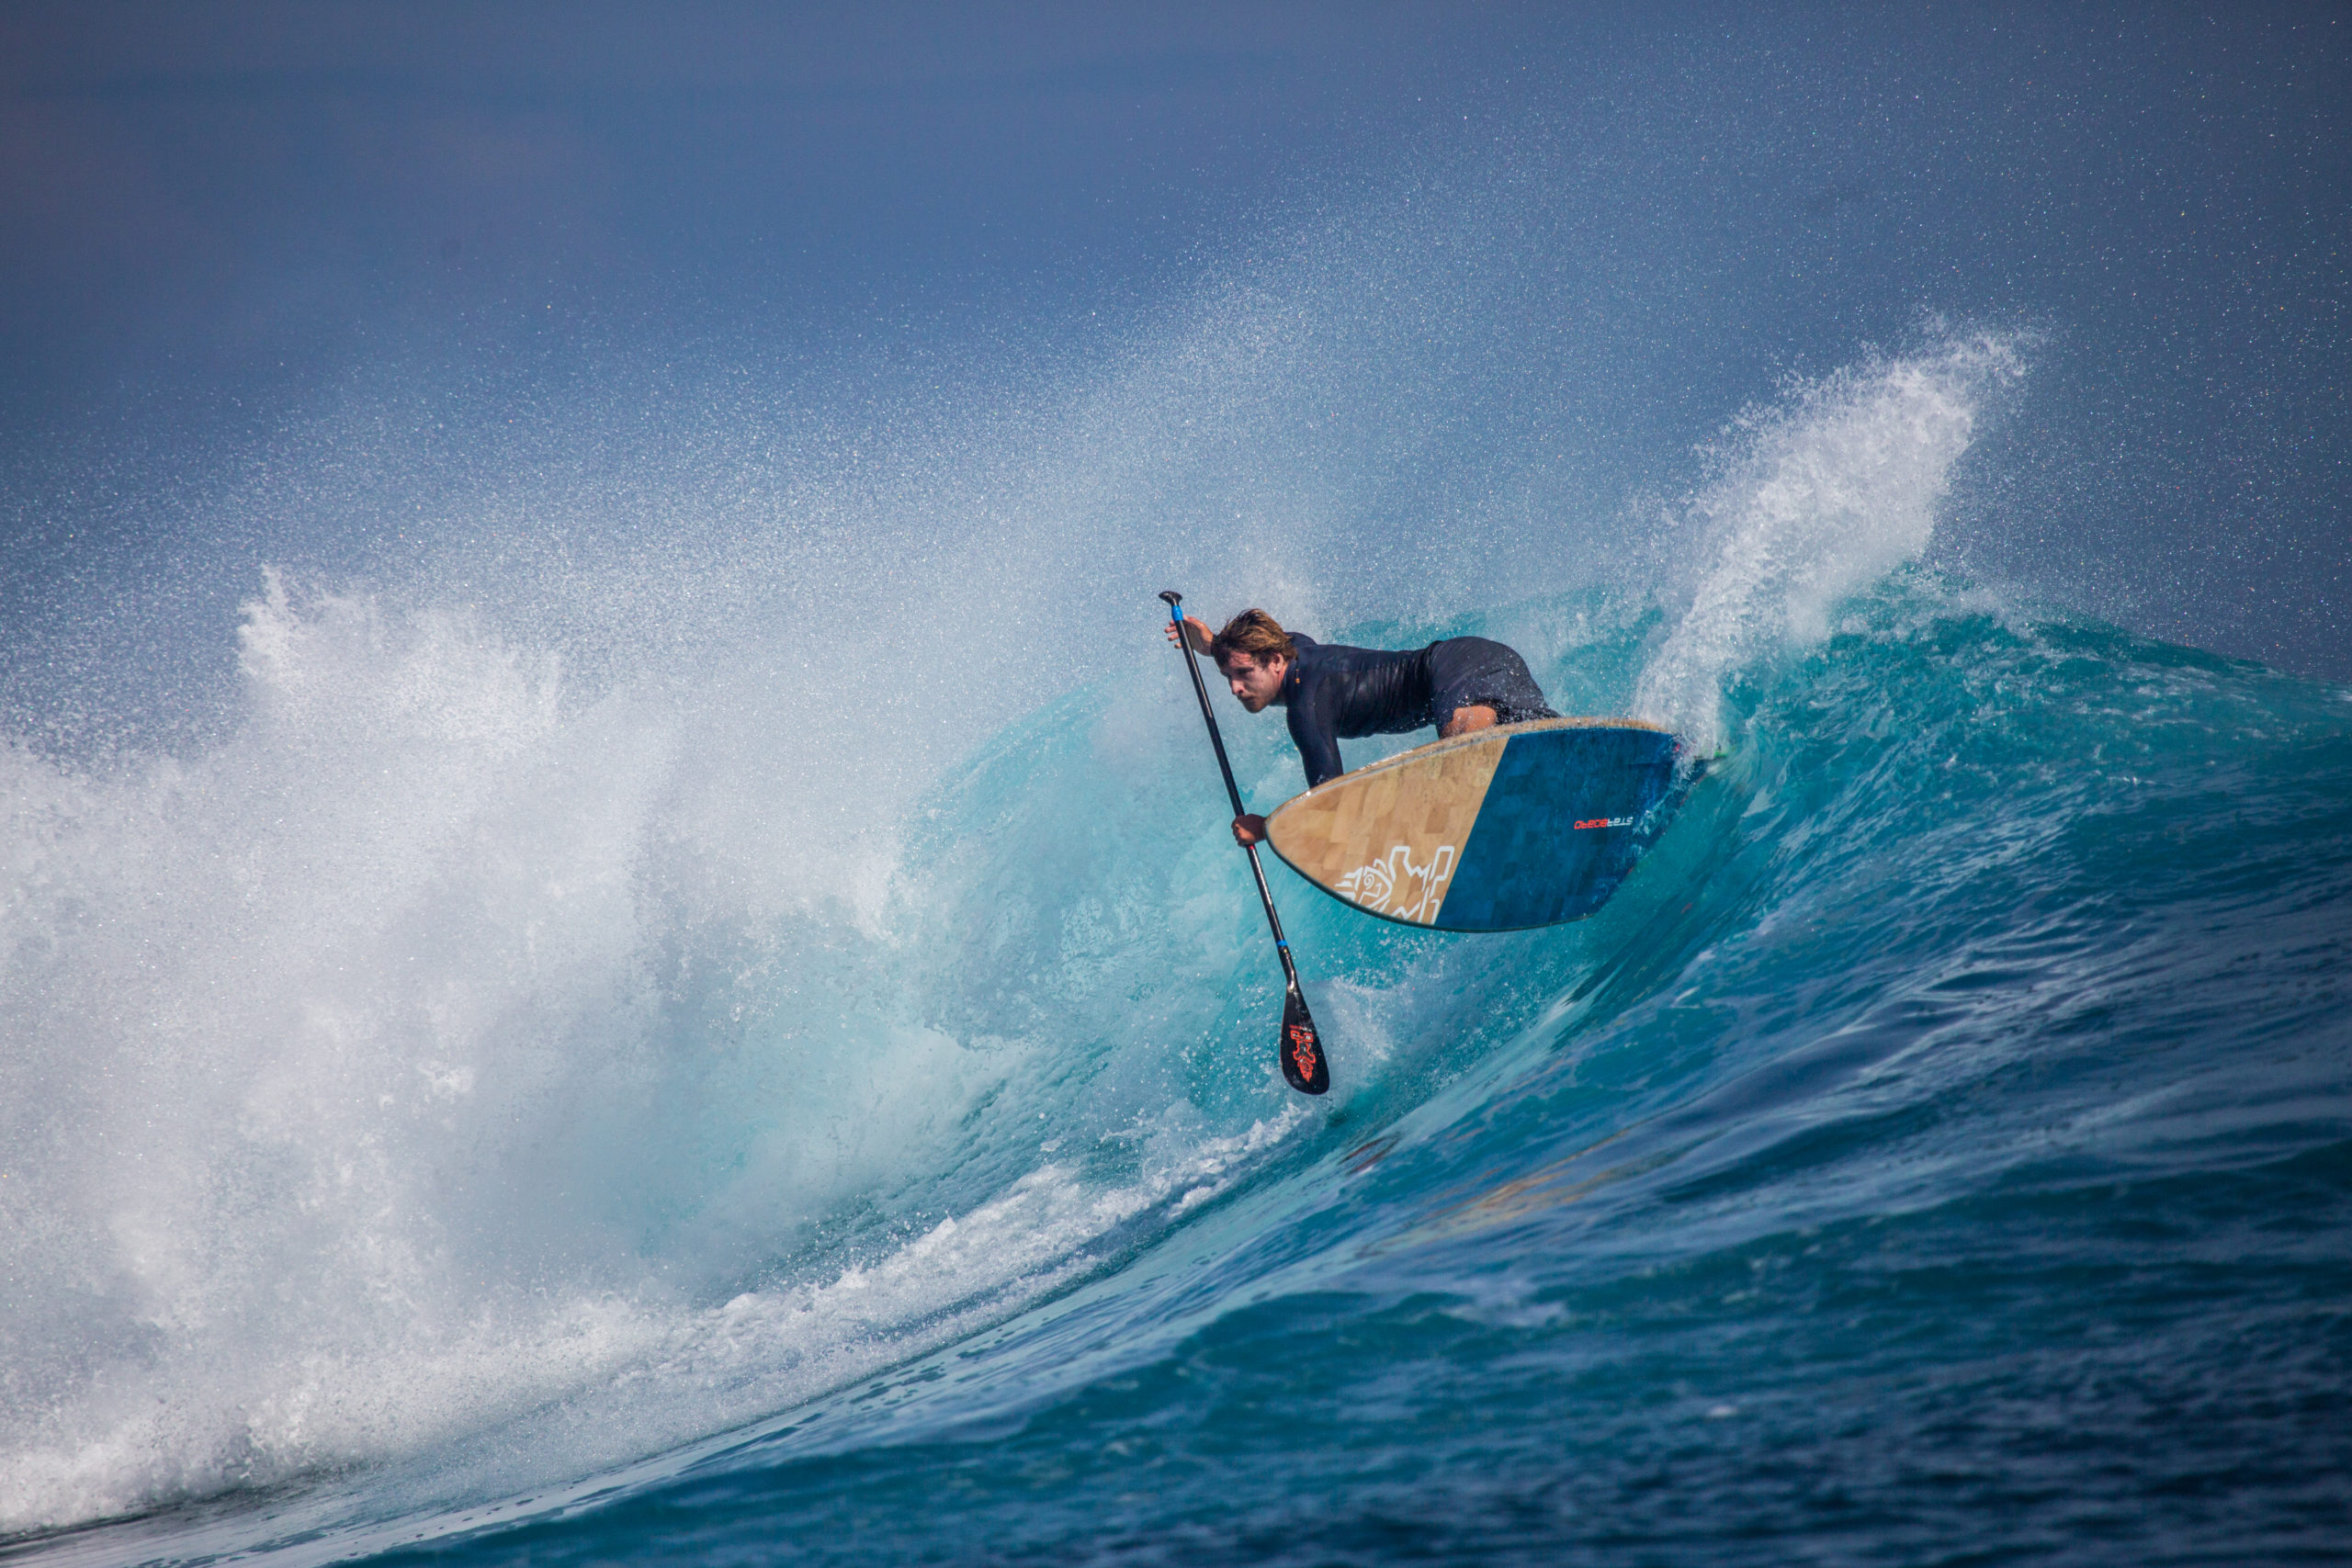 Sygma-sup-school- benoit-Carpentier-sup-surf-camp-supcamp-standuppaddle-stand-up-paddle-book-holiday-portugal-masterclass-worldchampion (1)bis